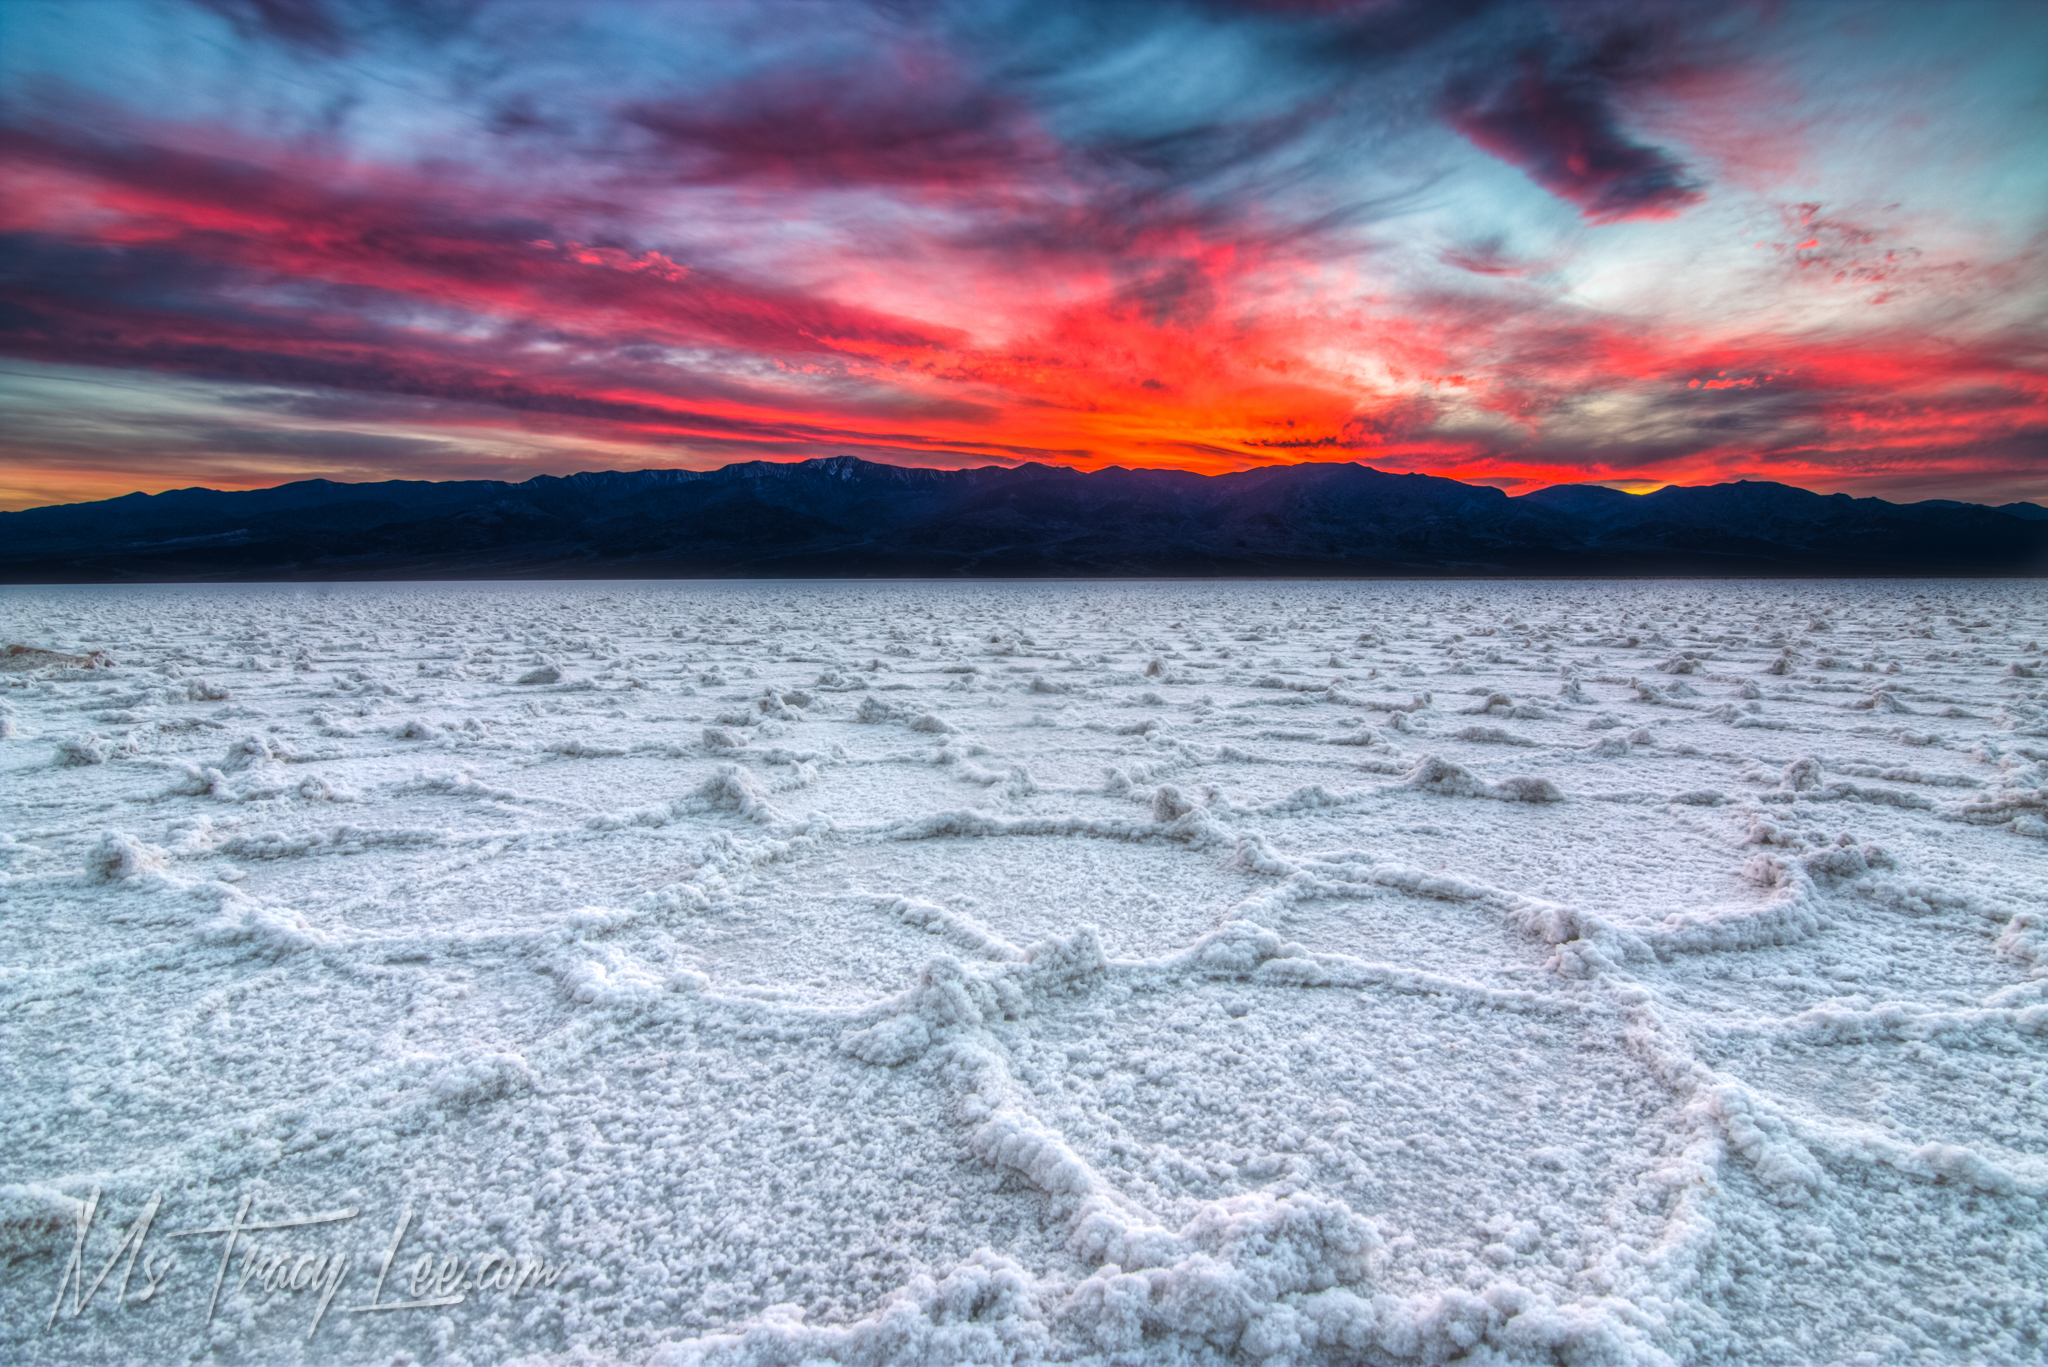 death-valley-salt-flat-racetrack-playa-eureka-sand-dunes-sunset-sunrise-tracy-lee-14